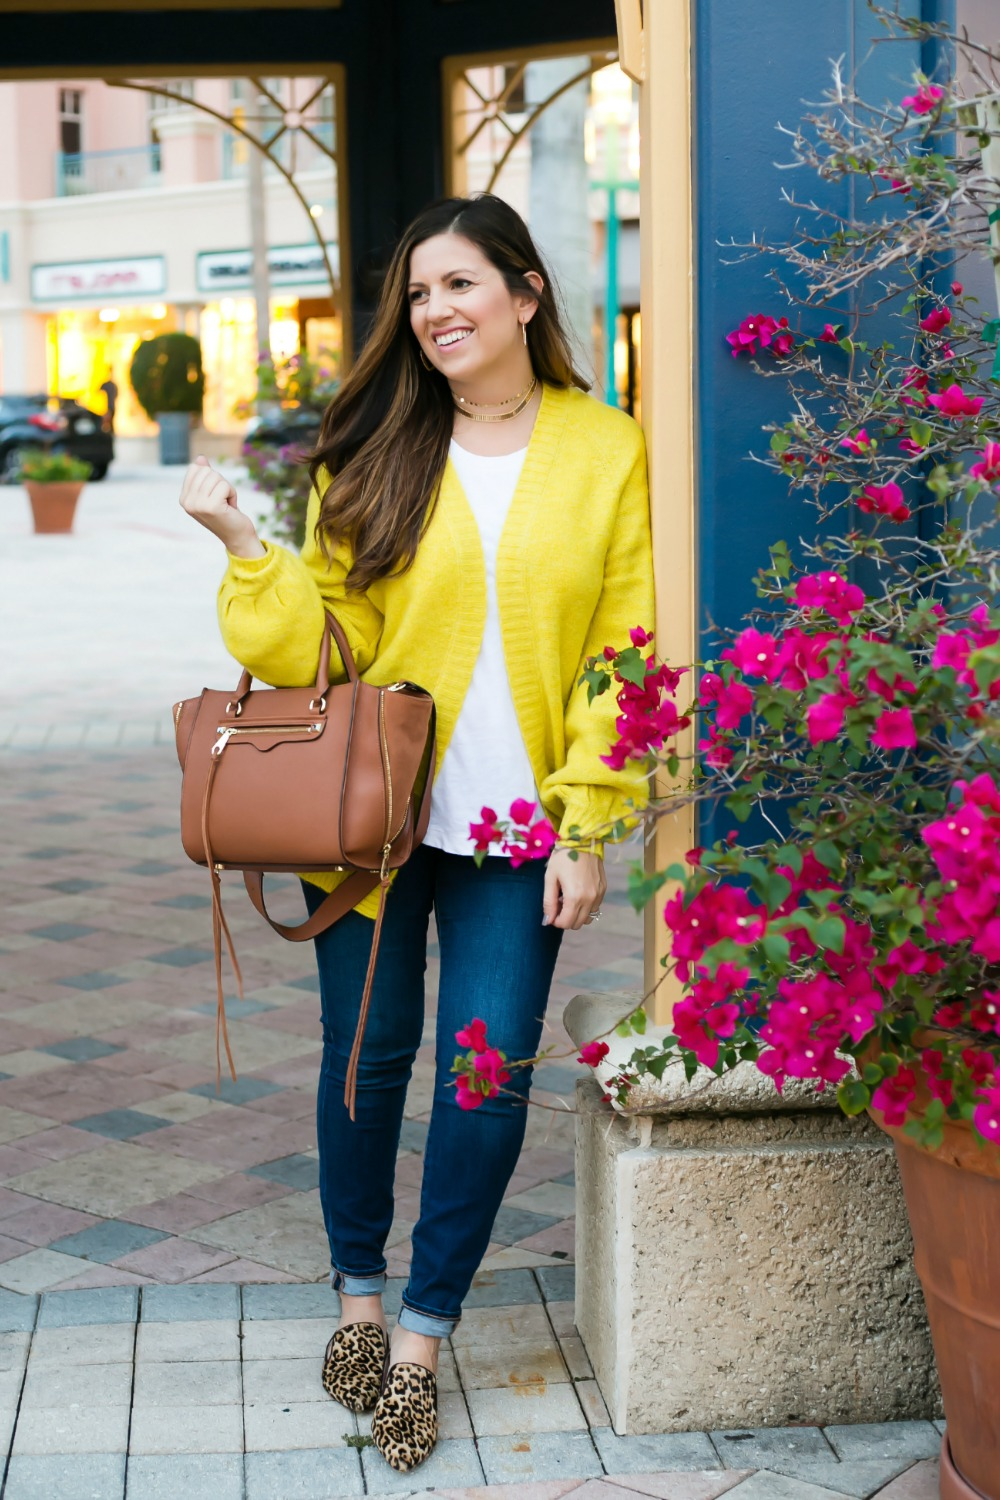 casual chic Fall outfit _ Mizner Park Boca Raton _ Florida Fashion Blogger Jaime Cittadino of Sunflowers and Stilettos